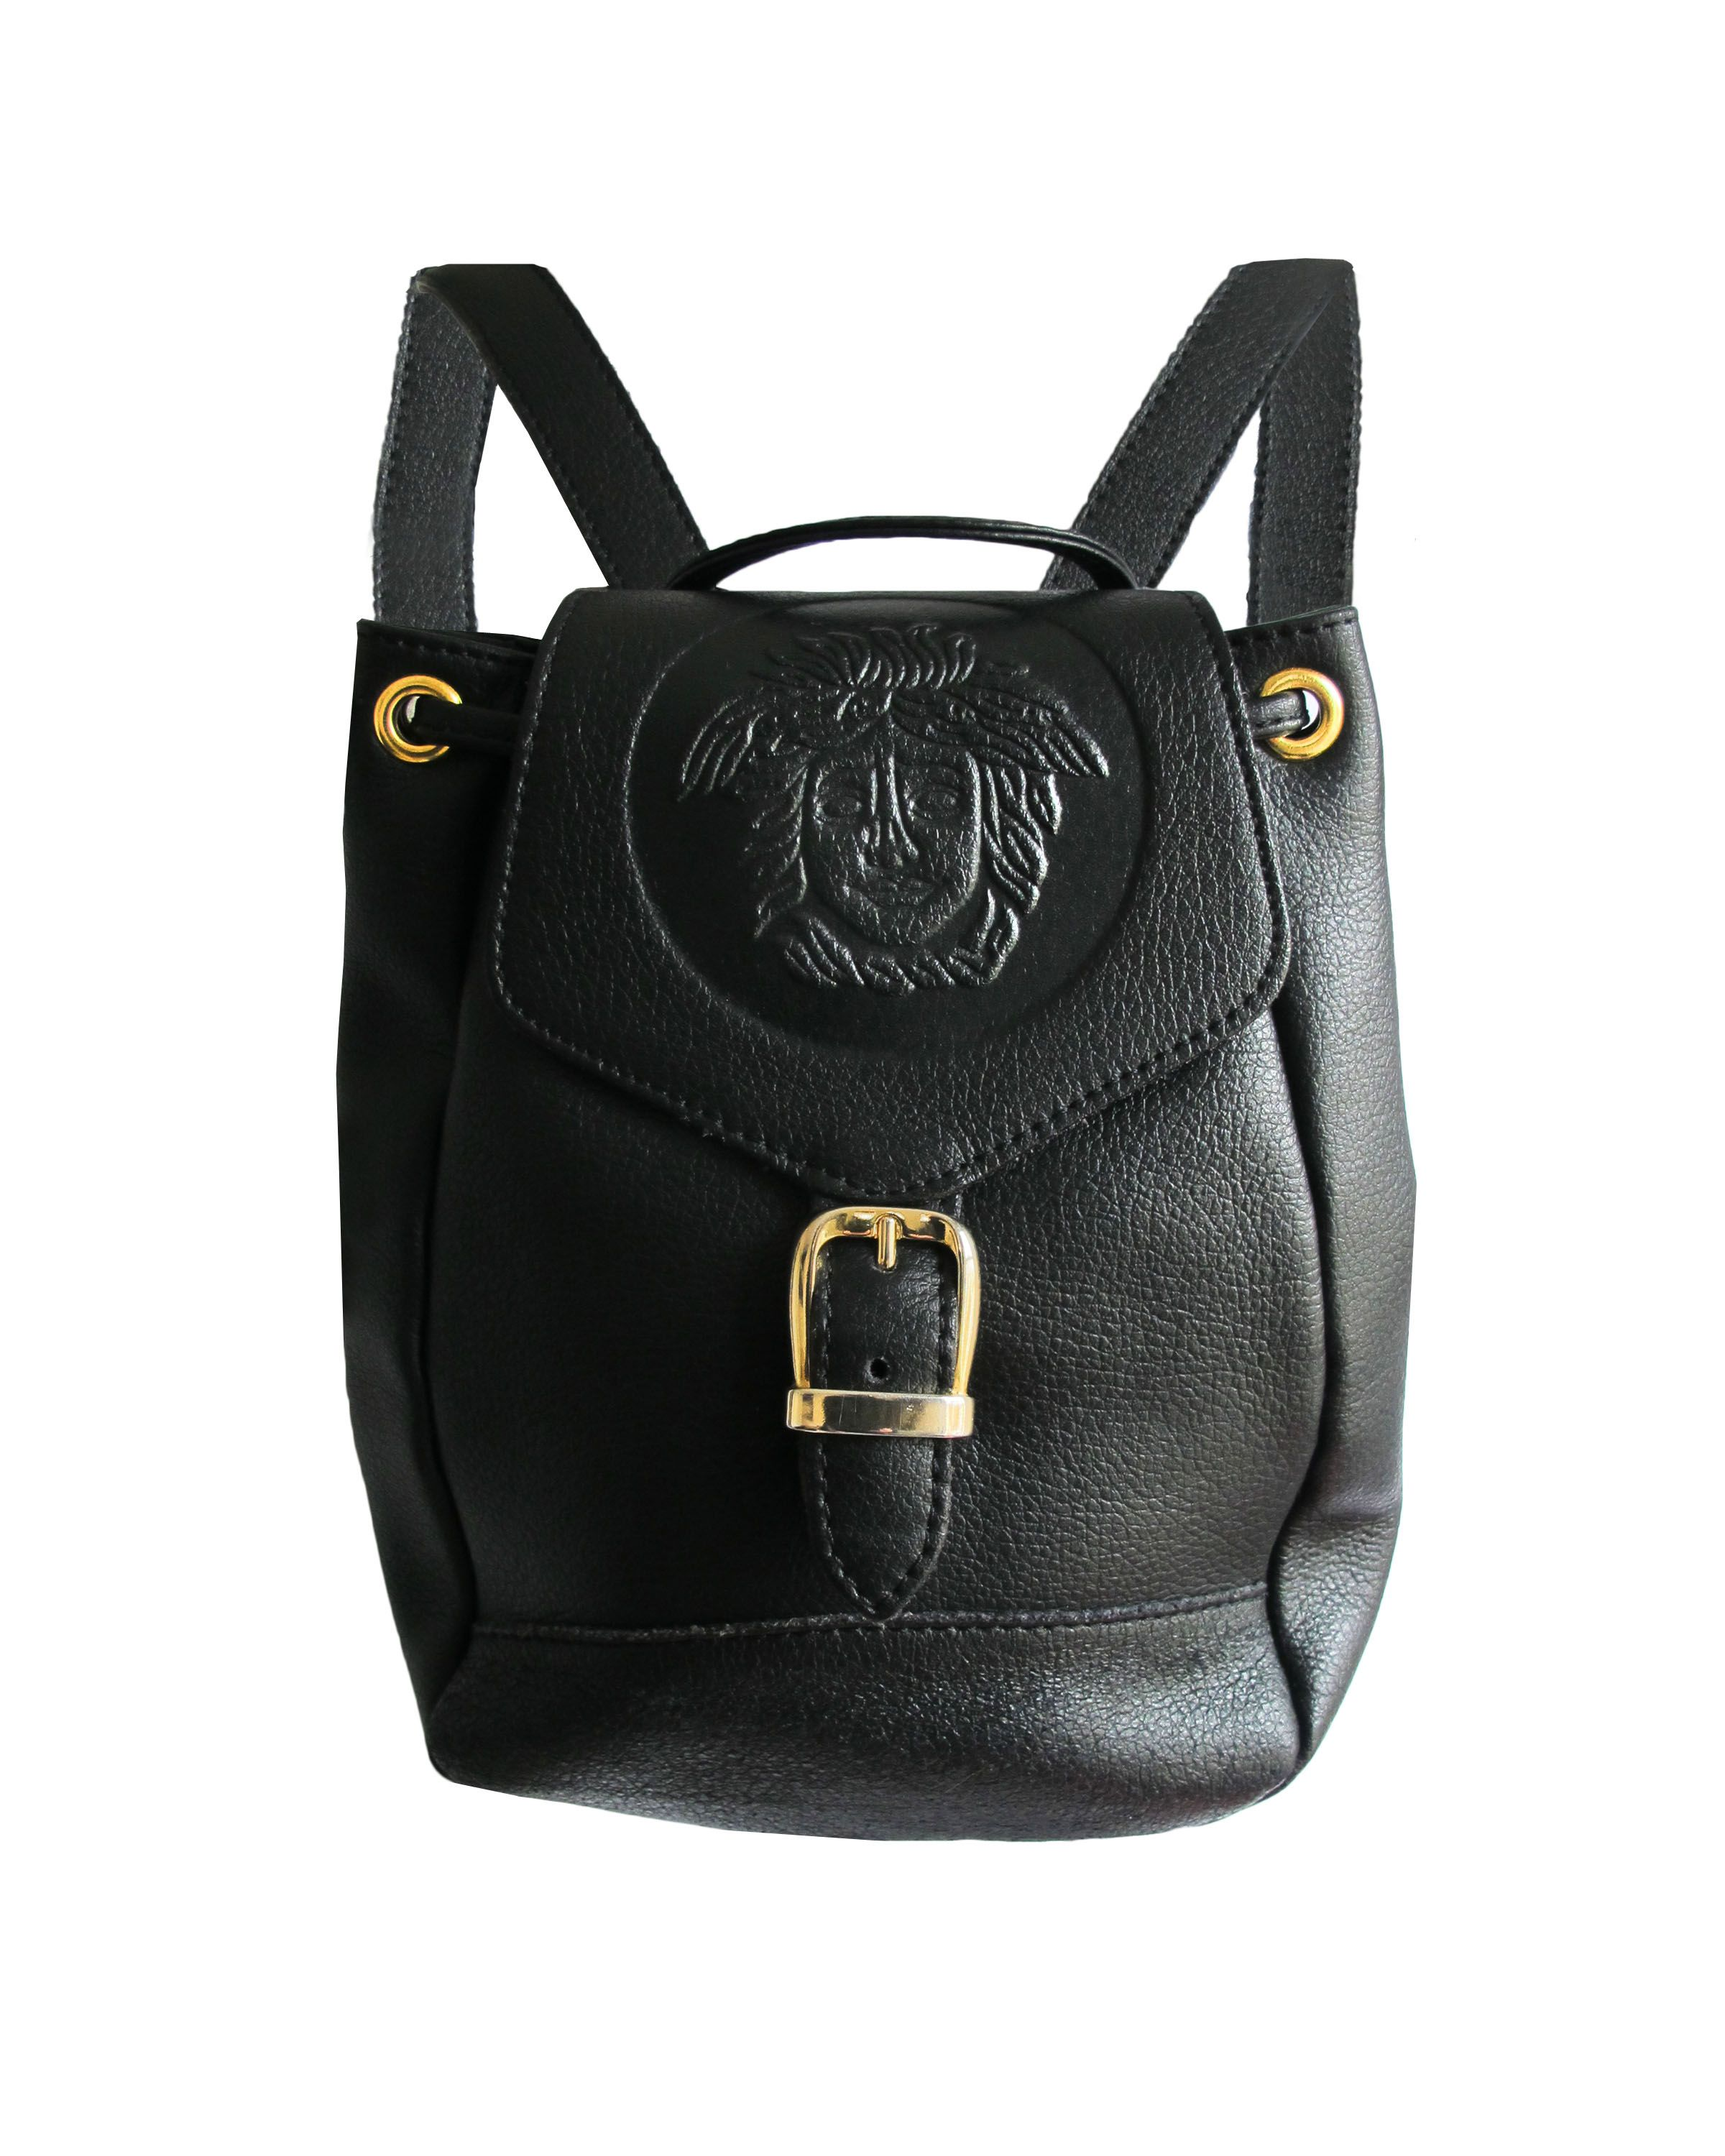 ad454bc6f05a Gianni versace